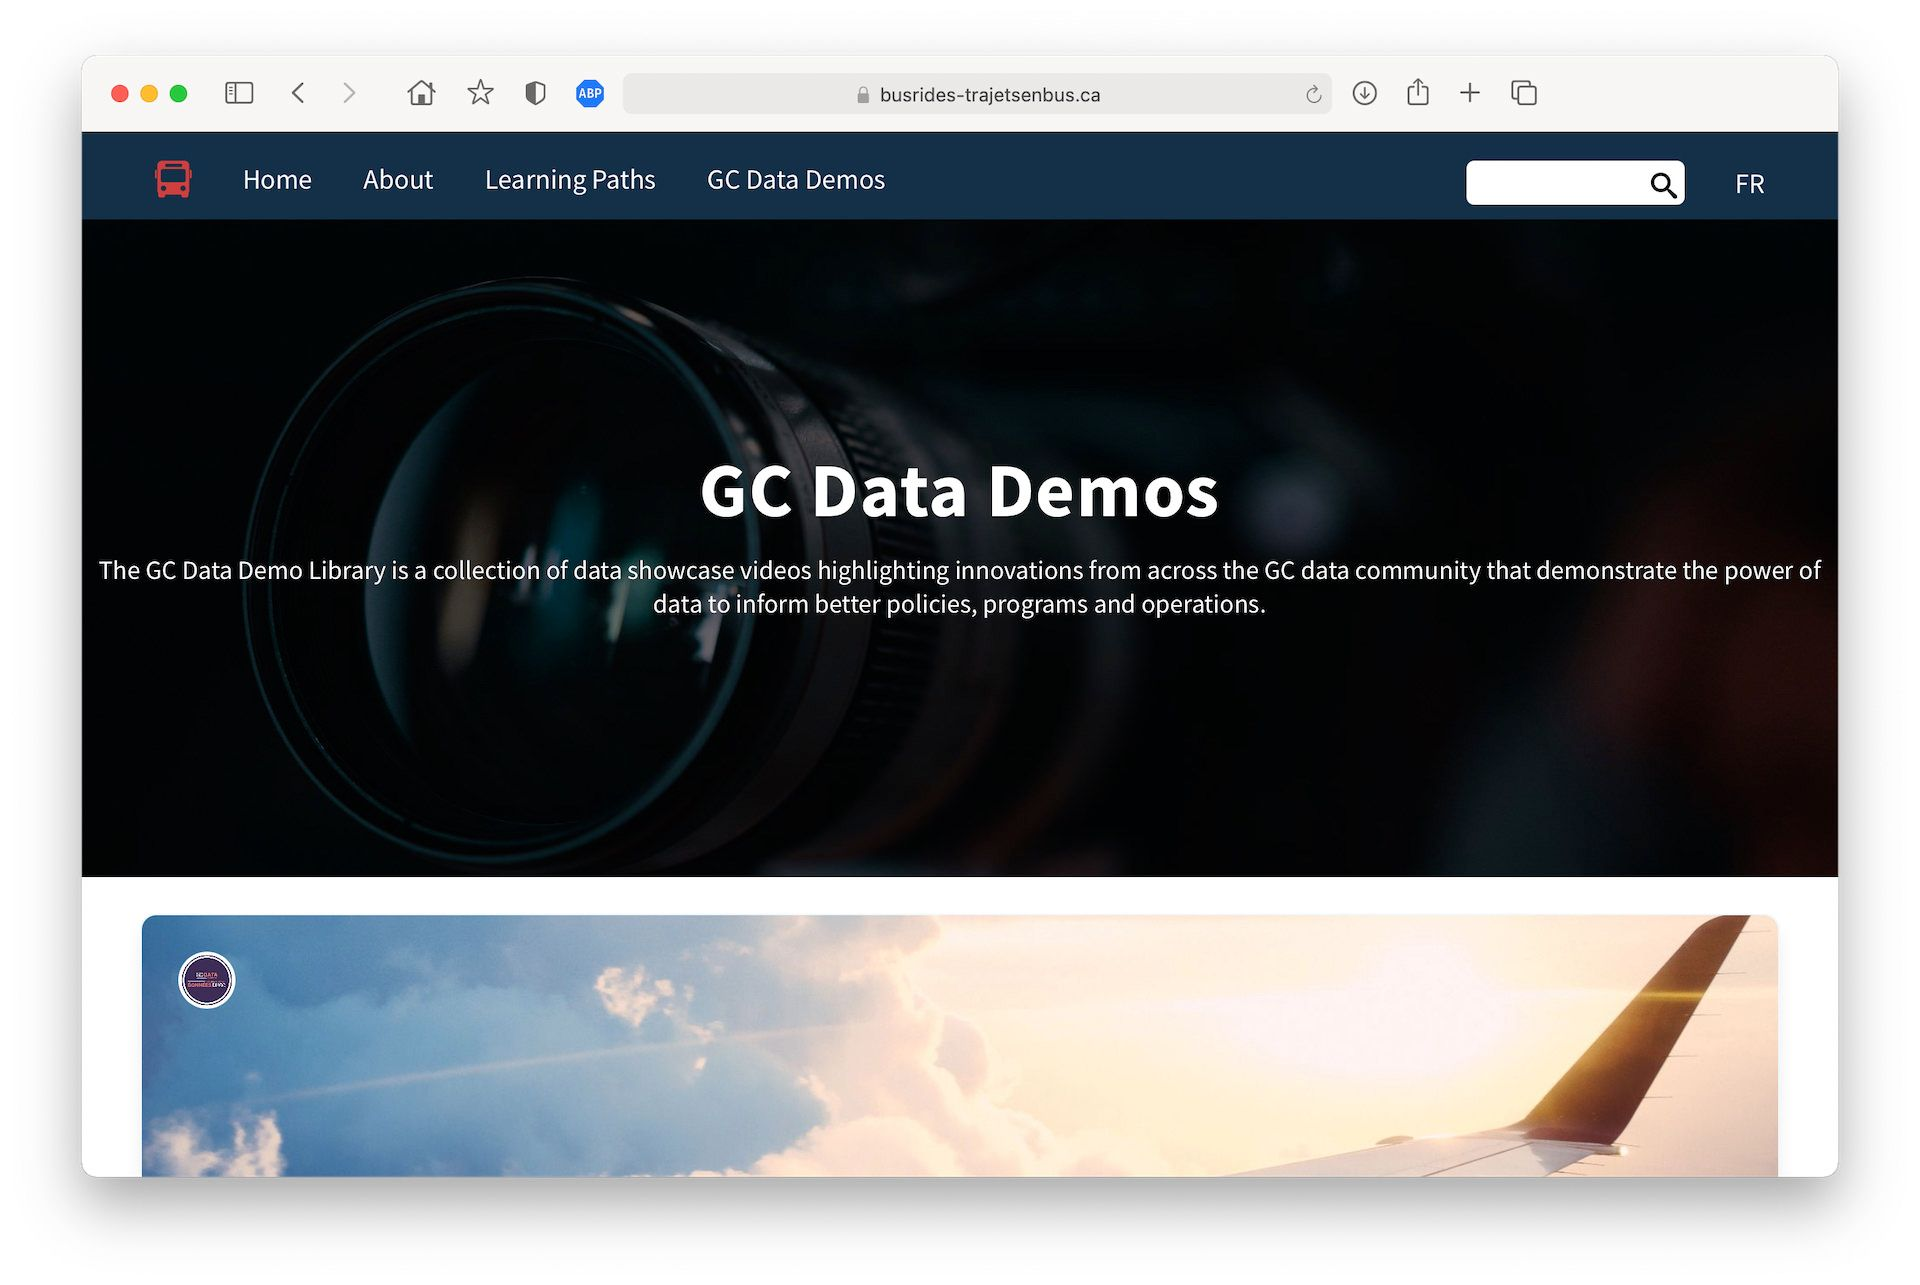 A screenshot of the GC Data Demos page